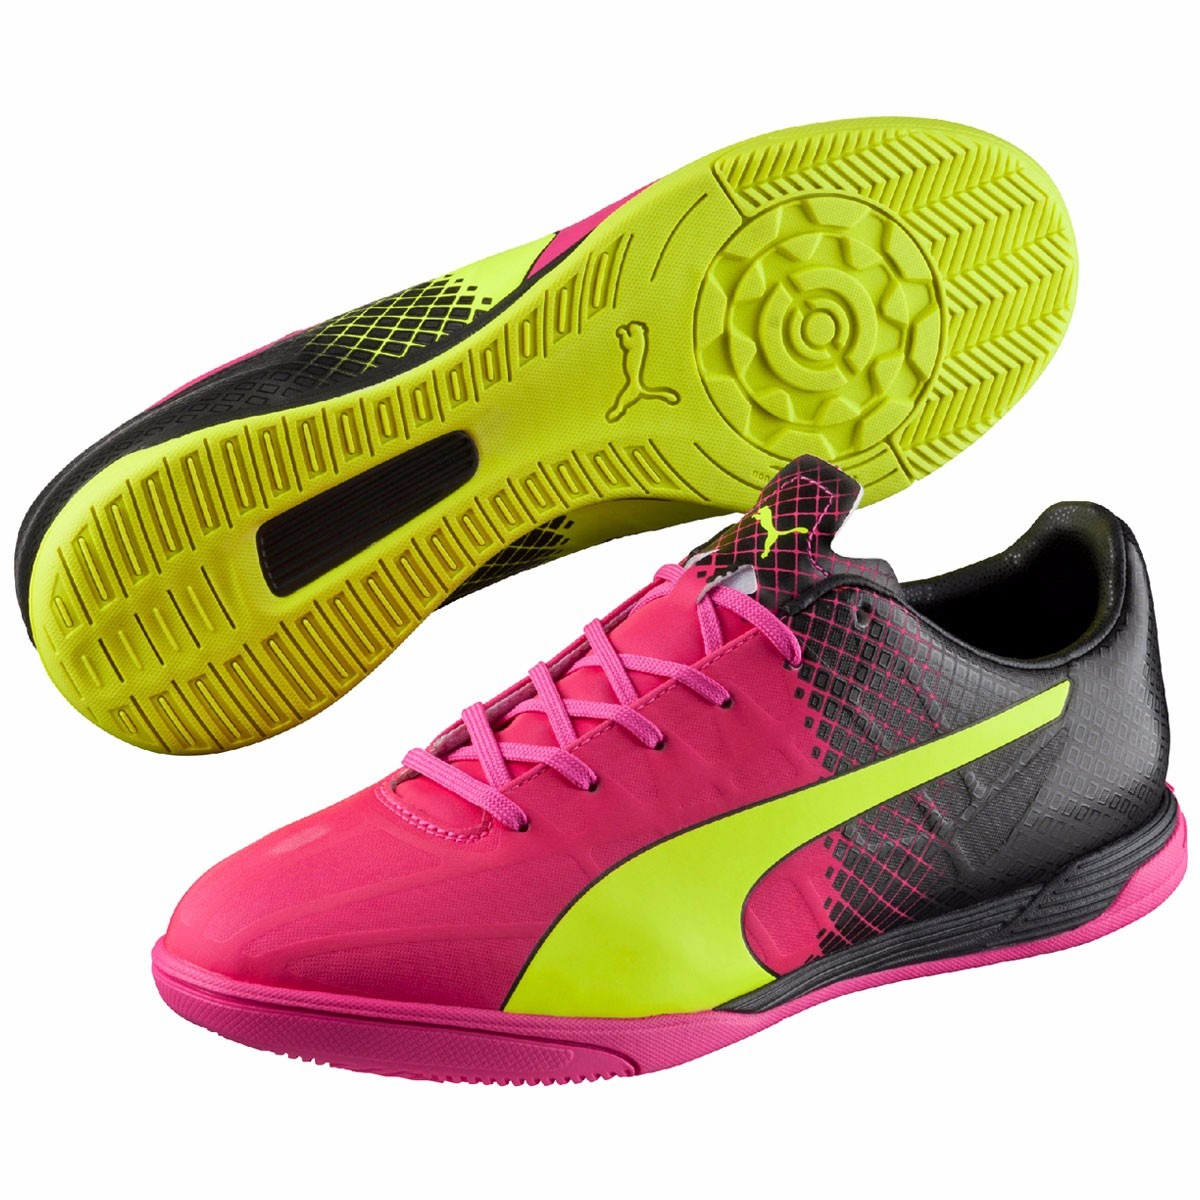 0156e56f686ca Chuteira Futsal Puma Evospeed 4.5 Tricks It Bdp Original - R  220